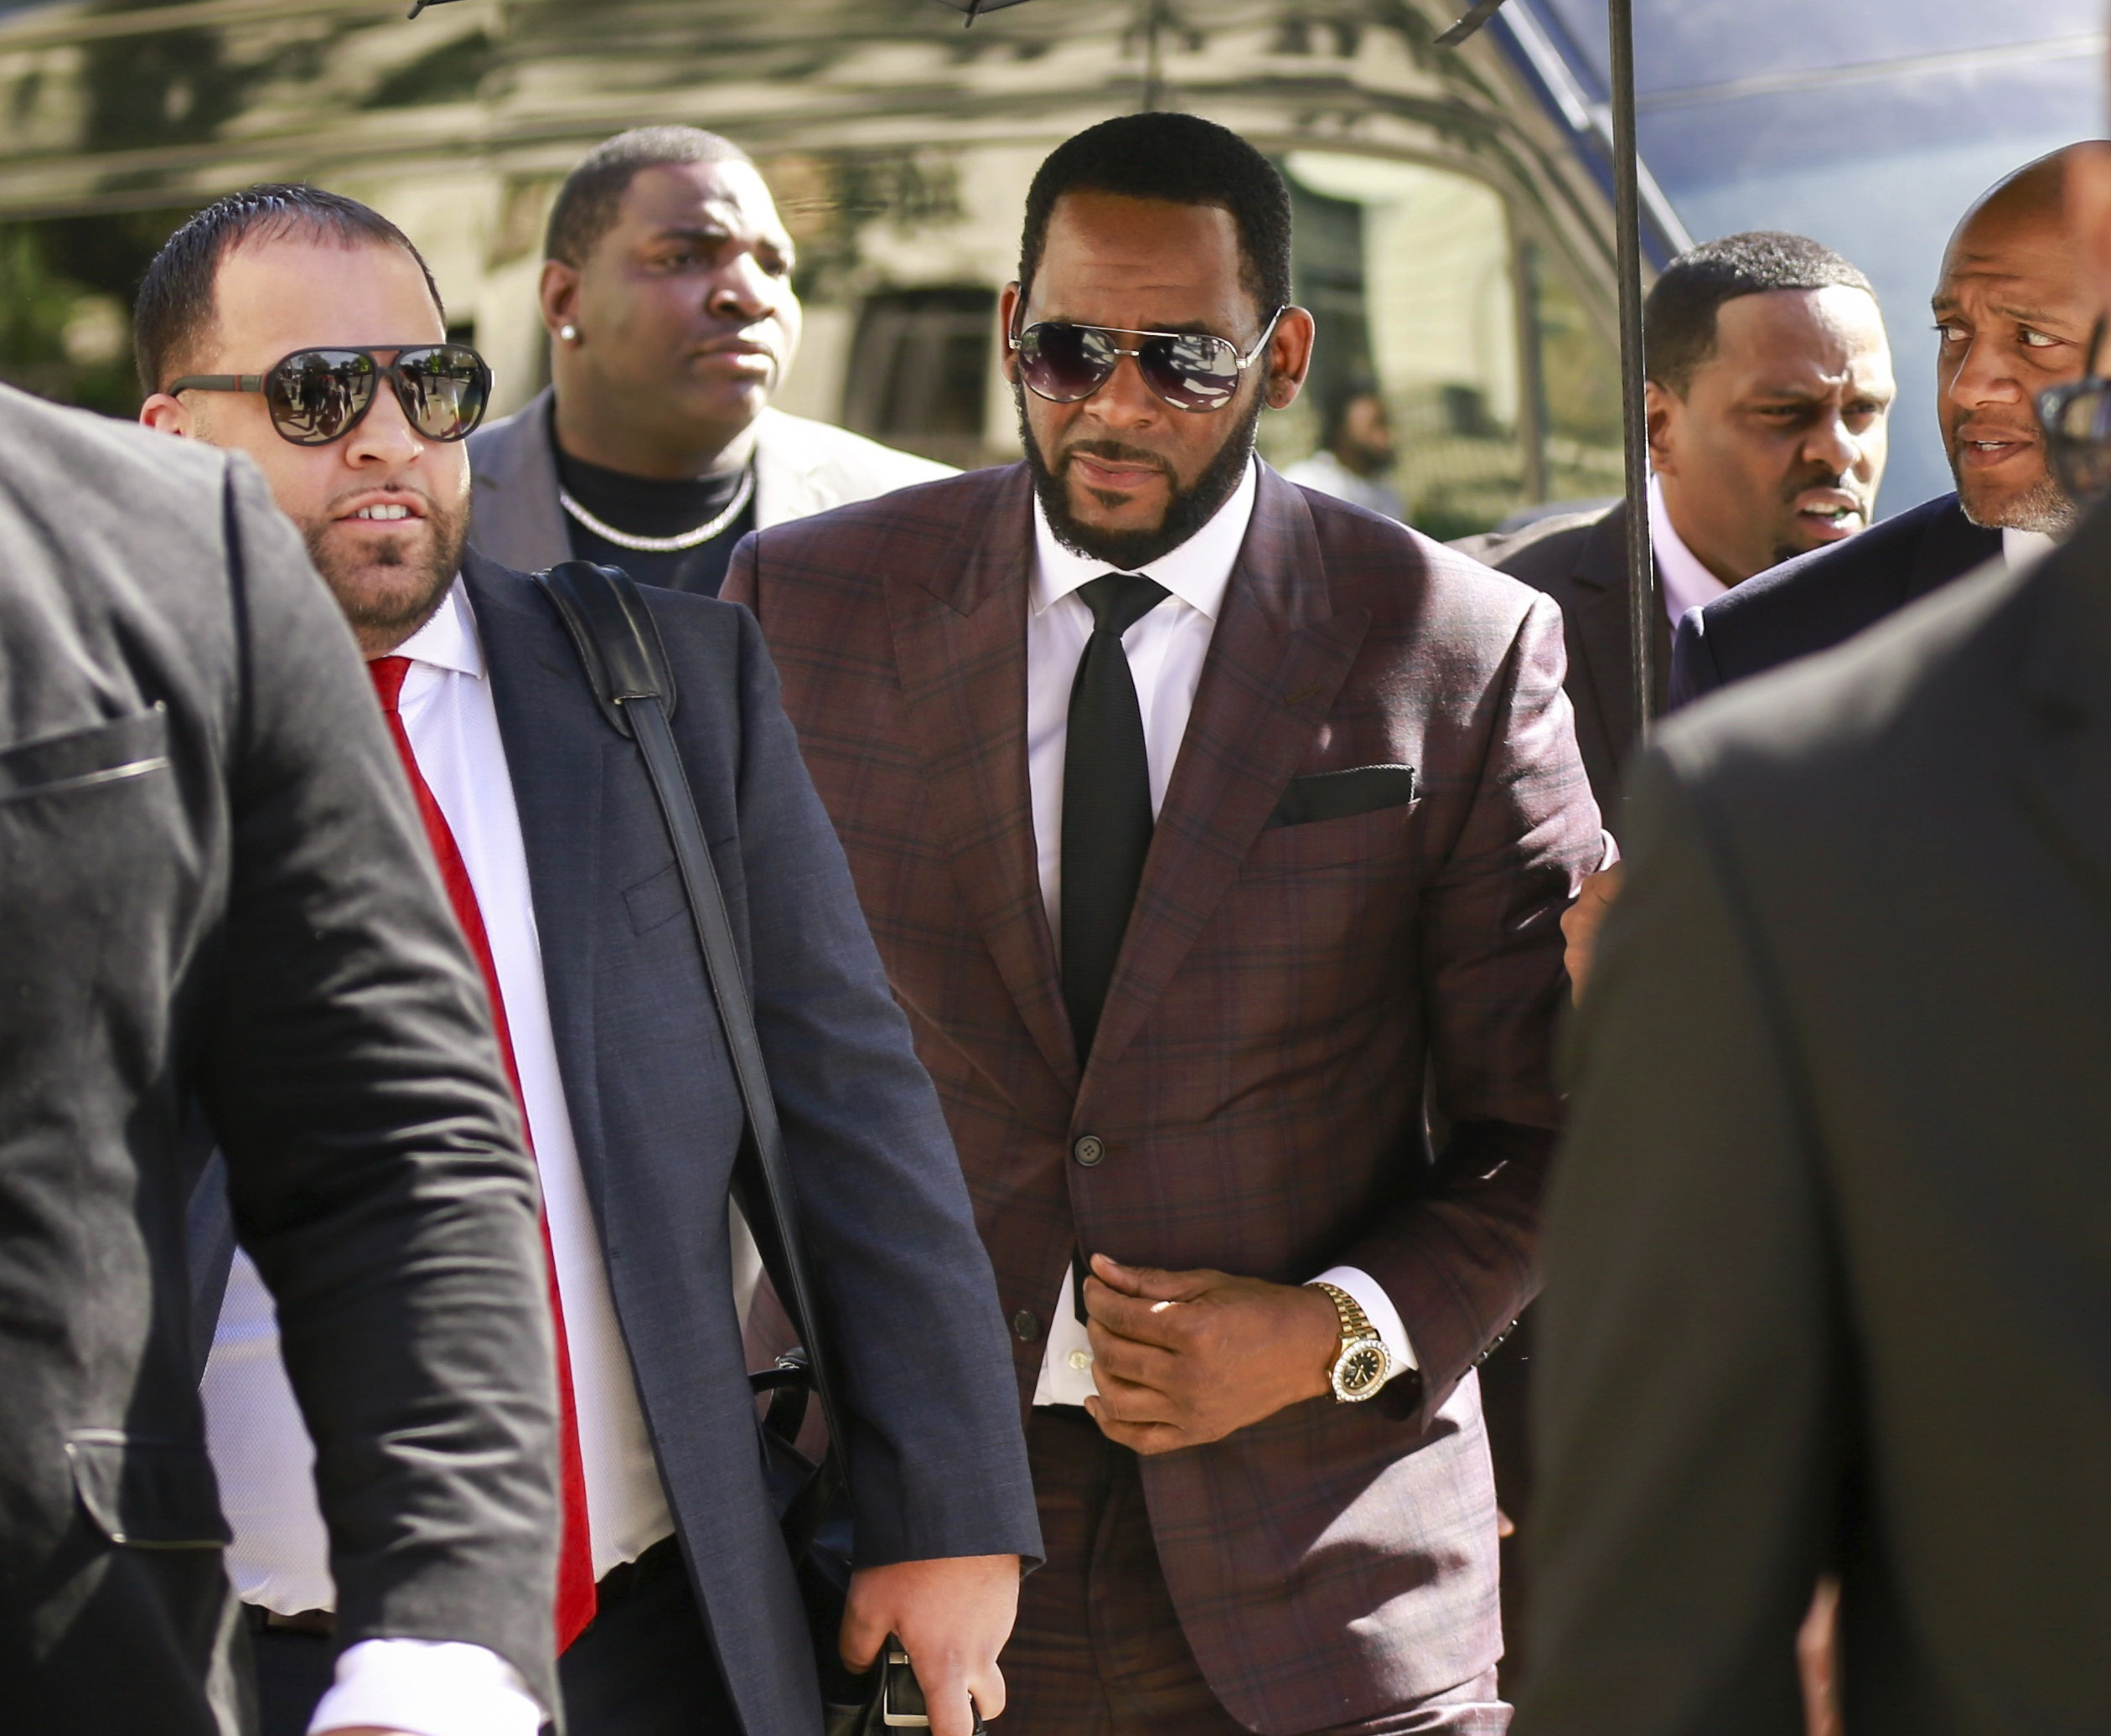 R. Kelly in June 2019 arriving at the Leighton Criminal Courthouse